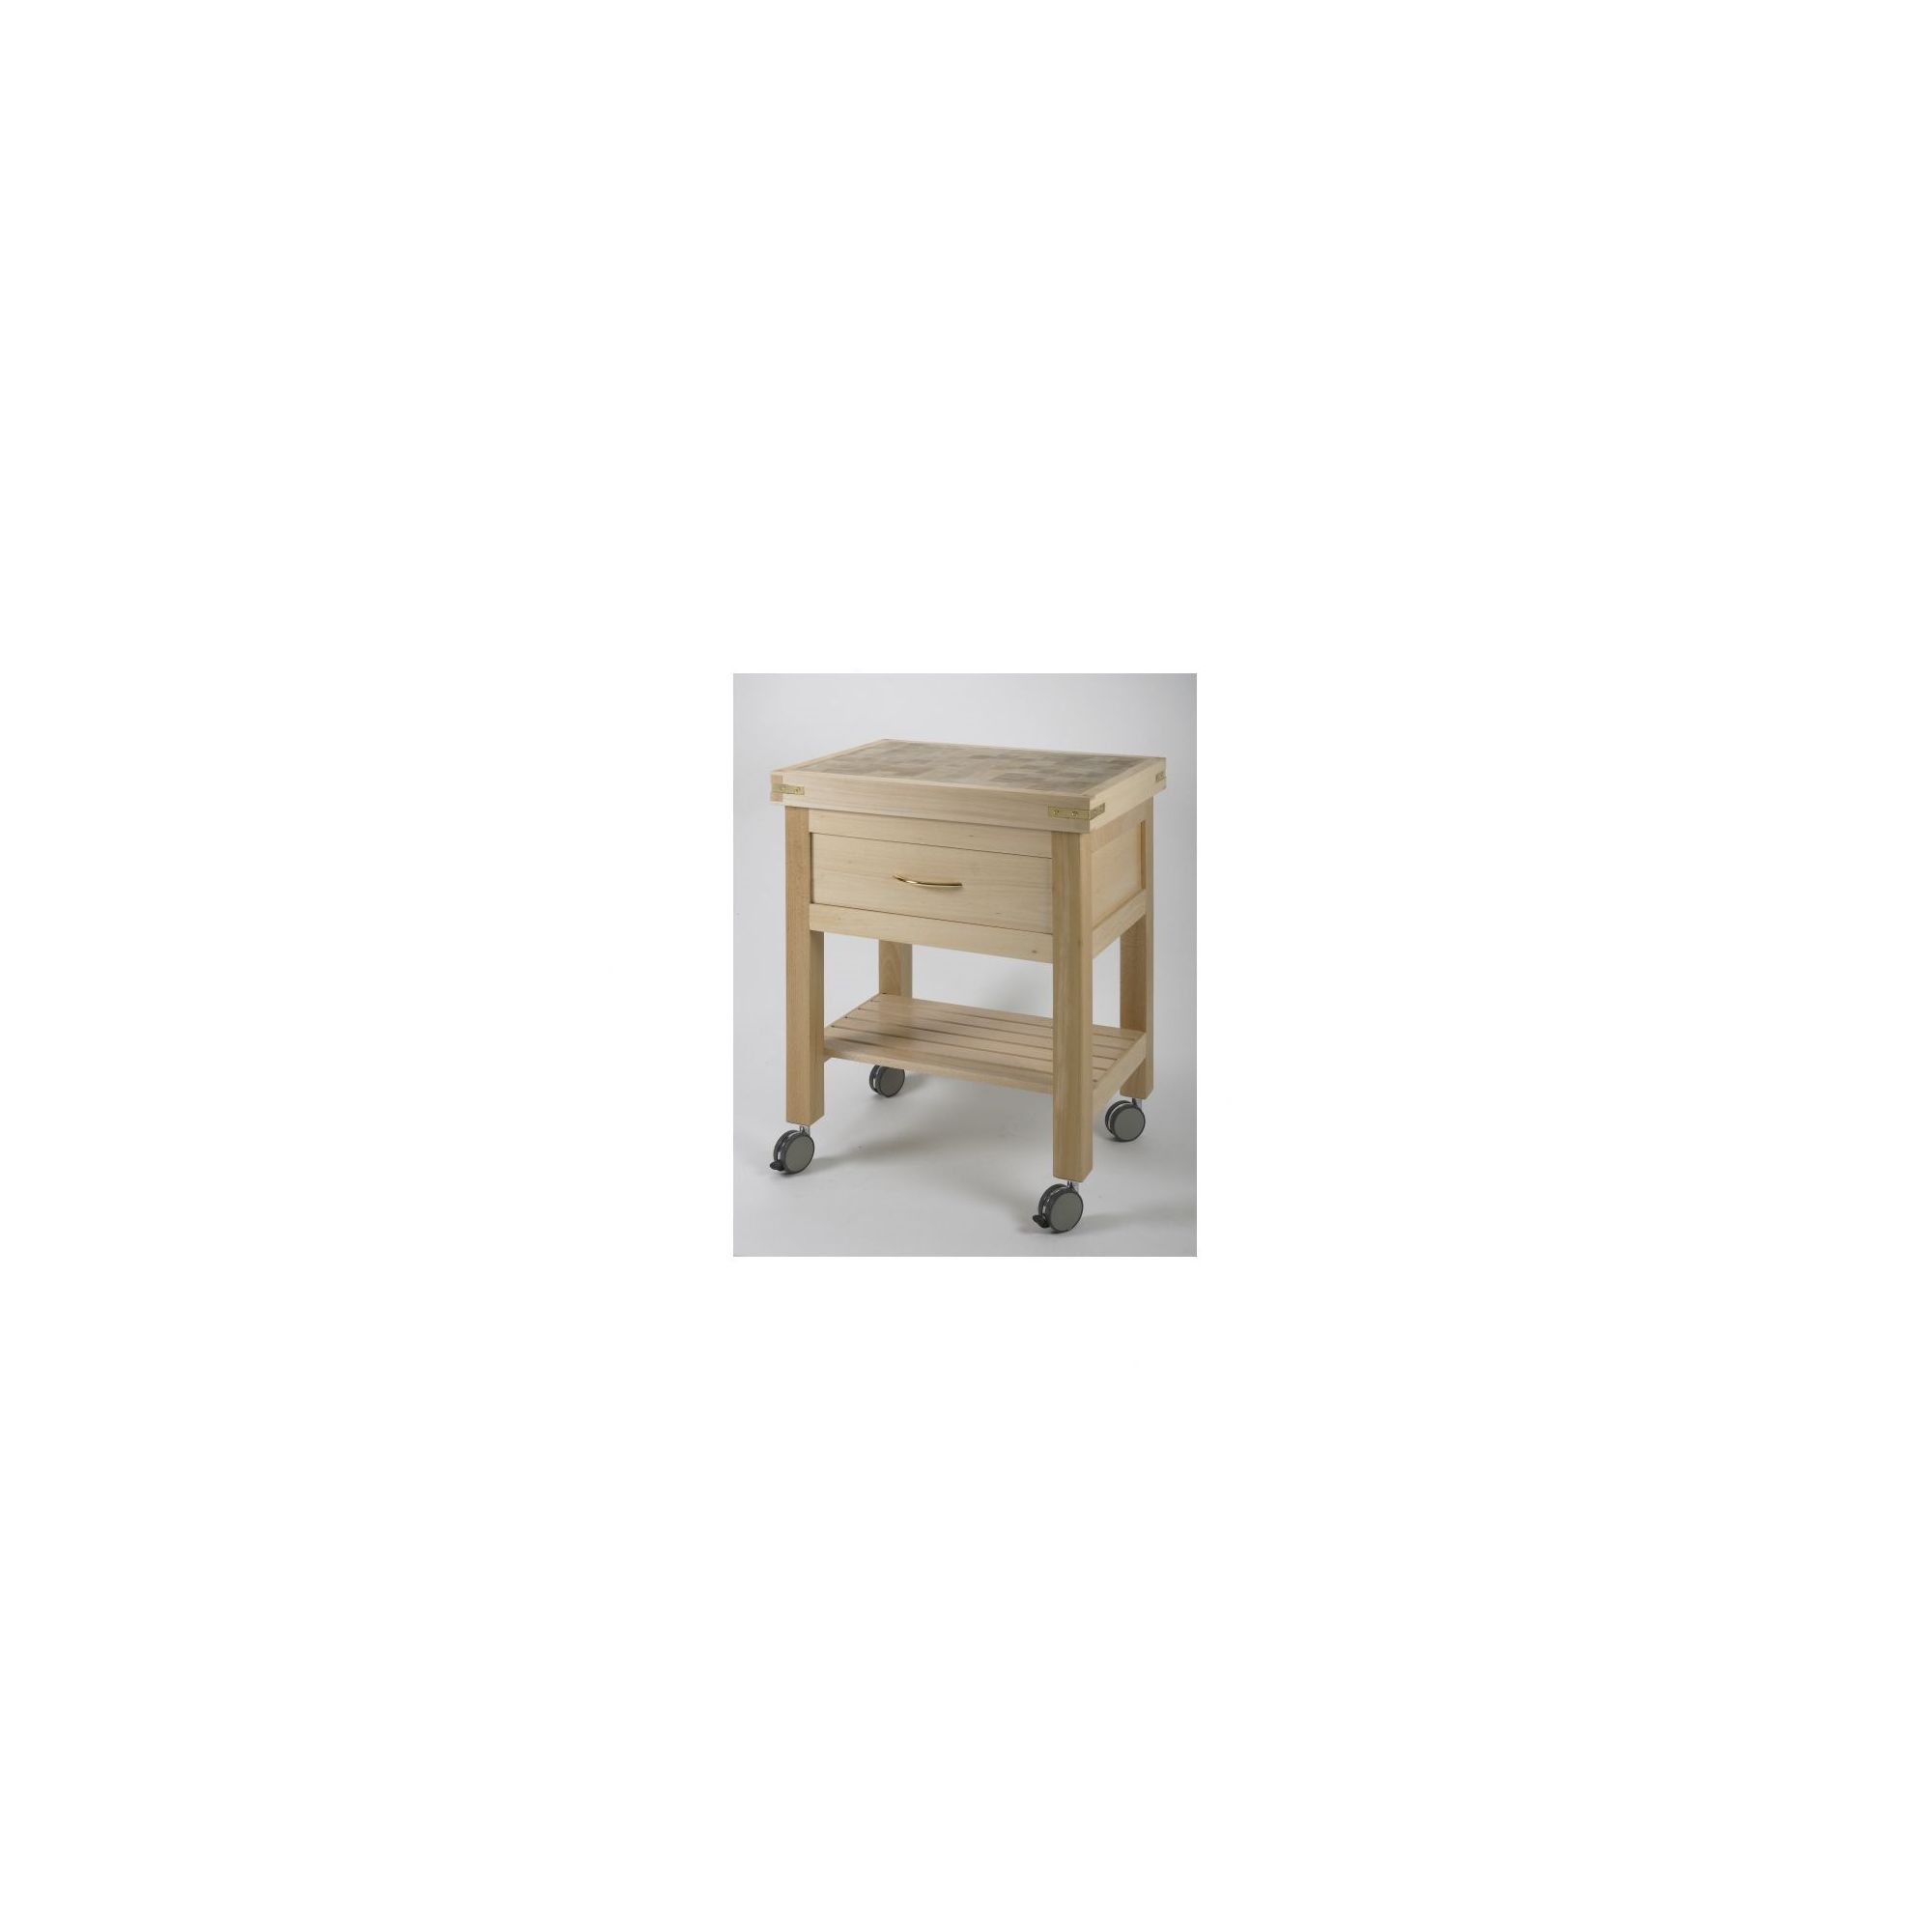 Chabret Kitchen Cart - 90cm X 60cm X 50cm at Tesco Direct